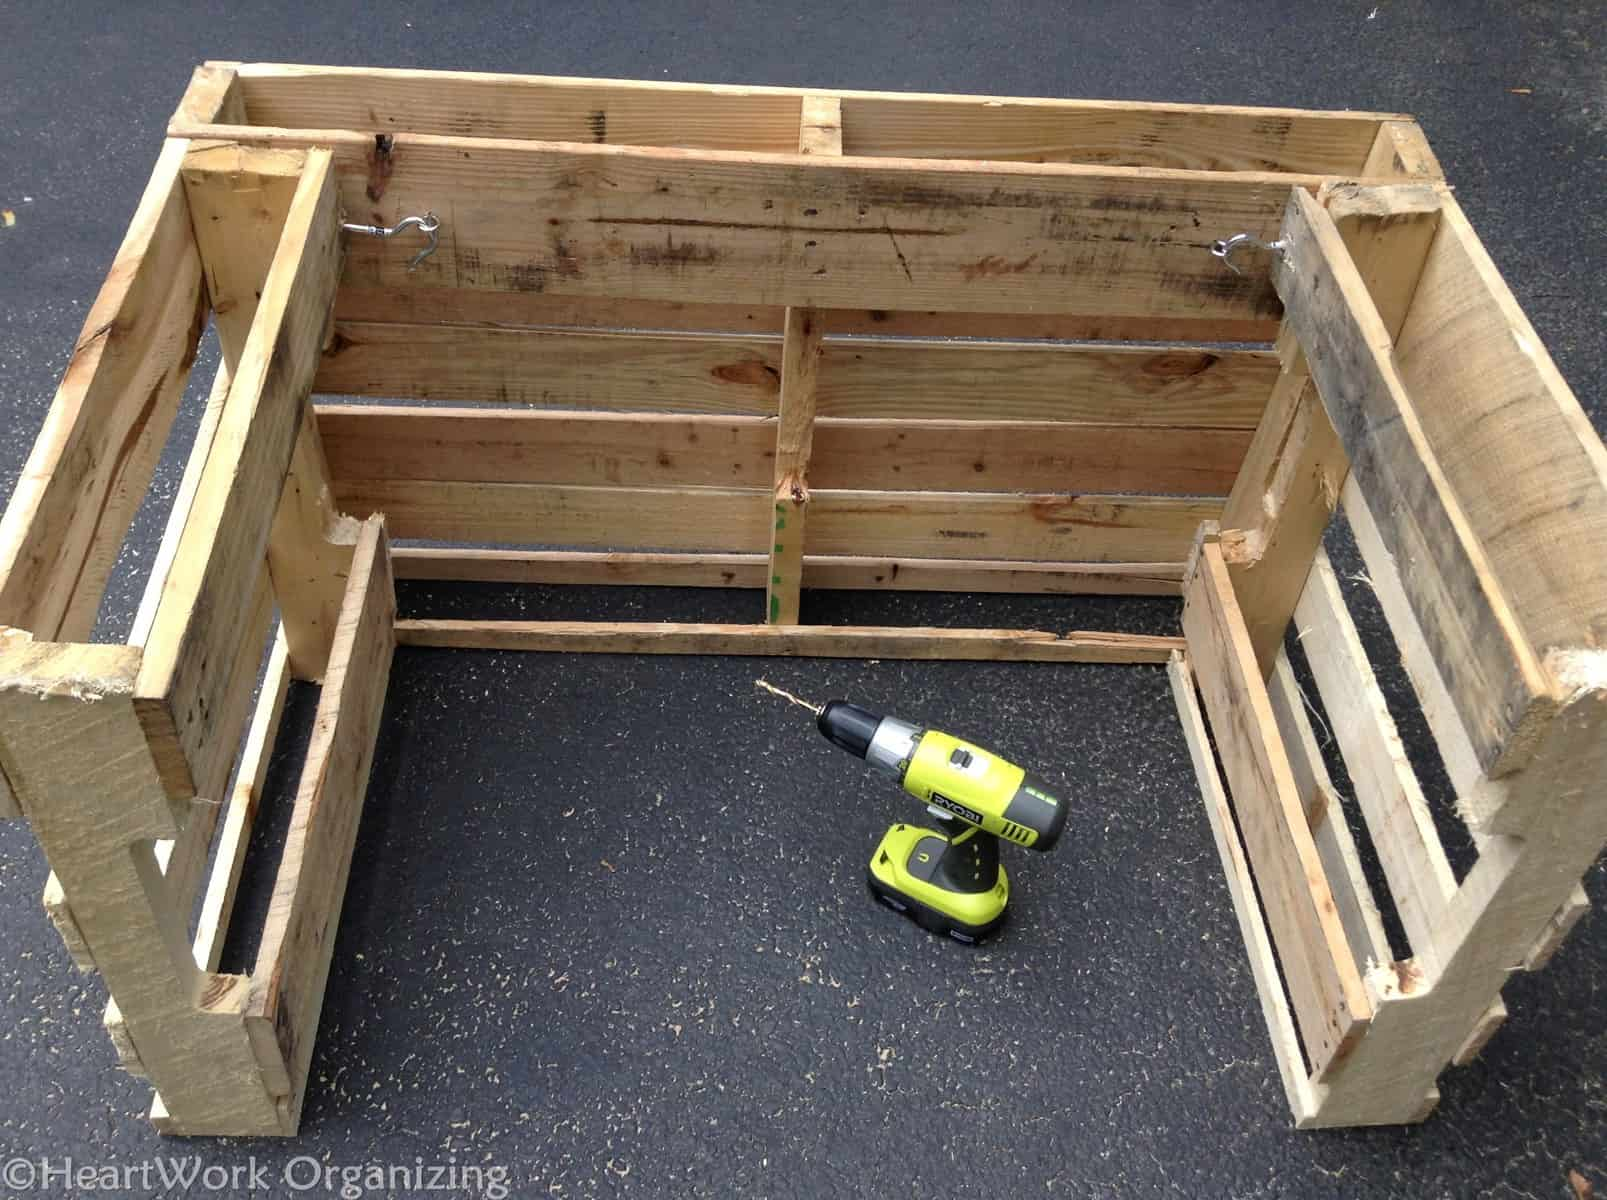 Summer 39 s not over until the we put away the lemonade stand for Pallet lemonade stand plans